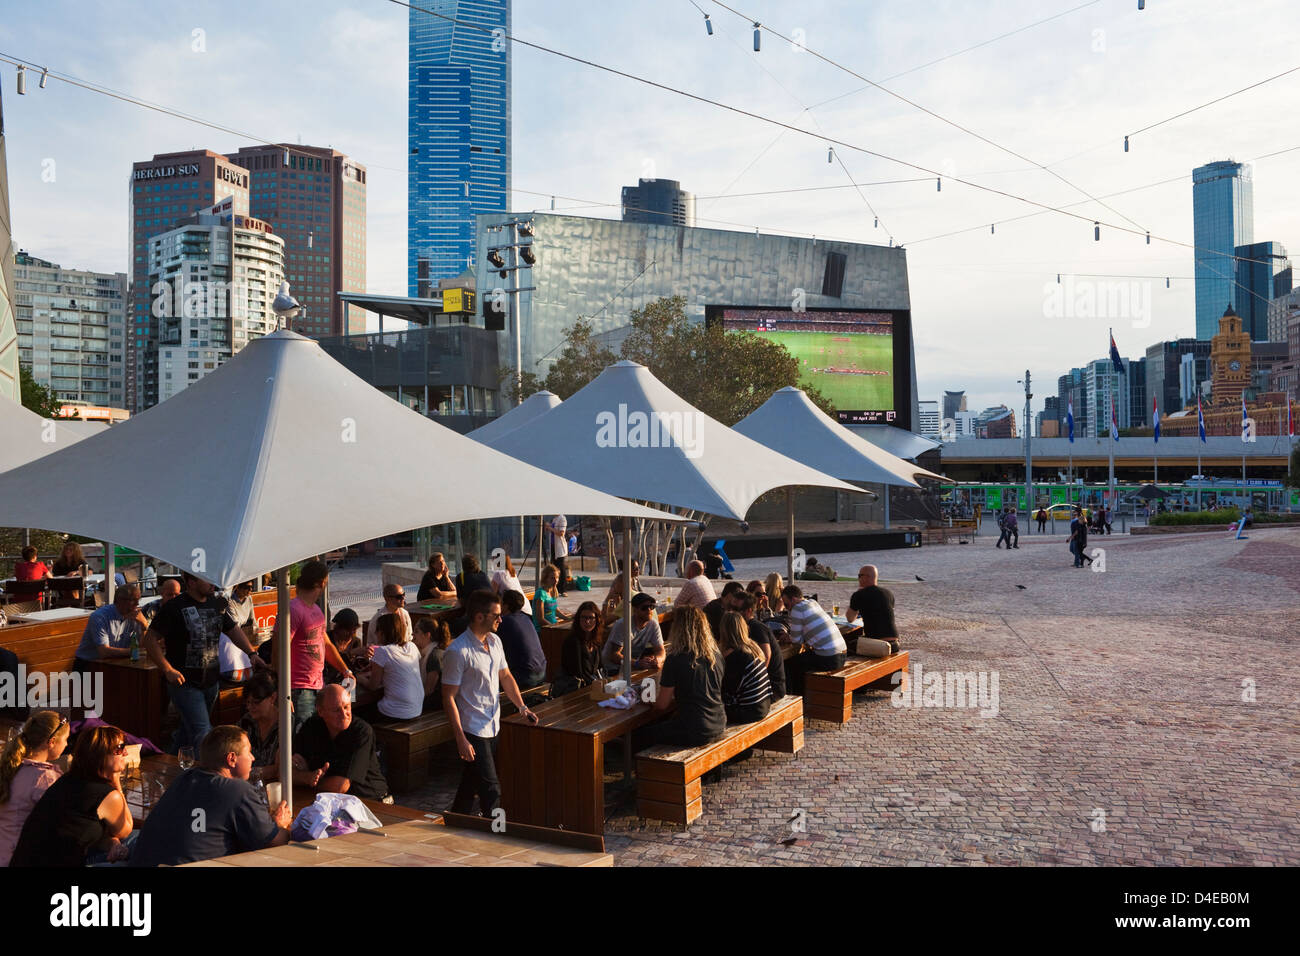 People relaxing at cafe bar in Federation Sqaure. Melbourne, Victoria, Australia - Stock Image